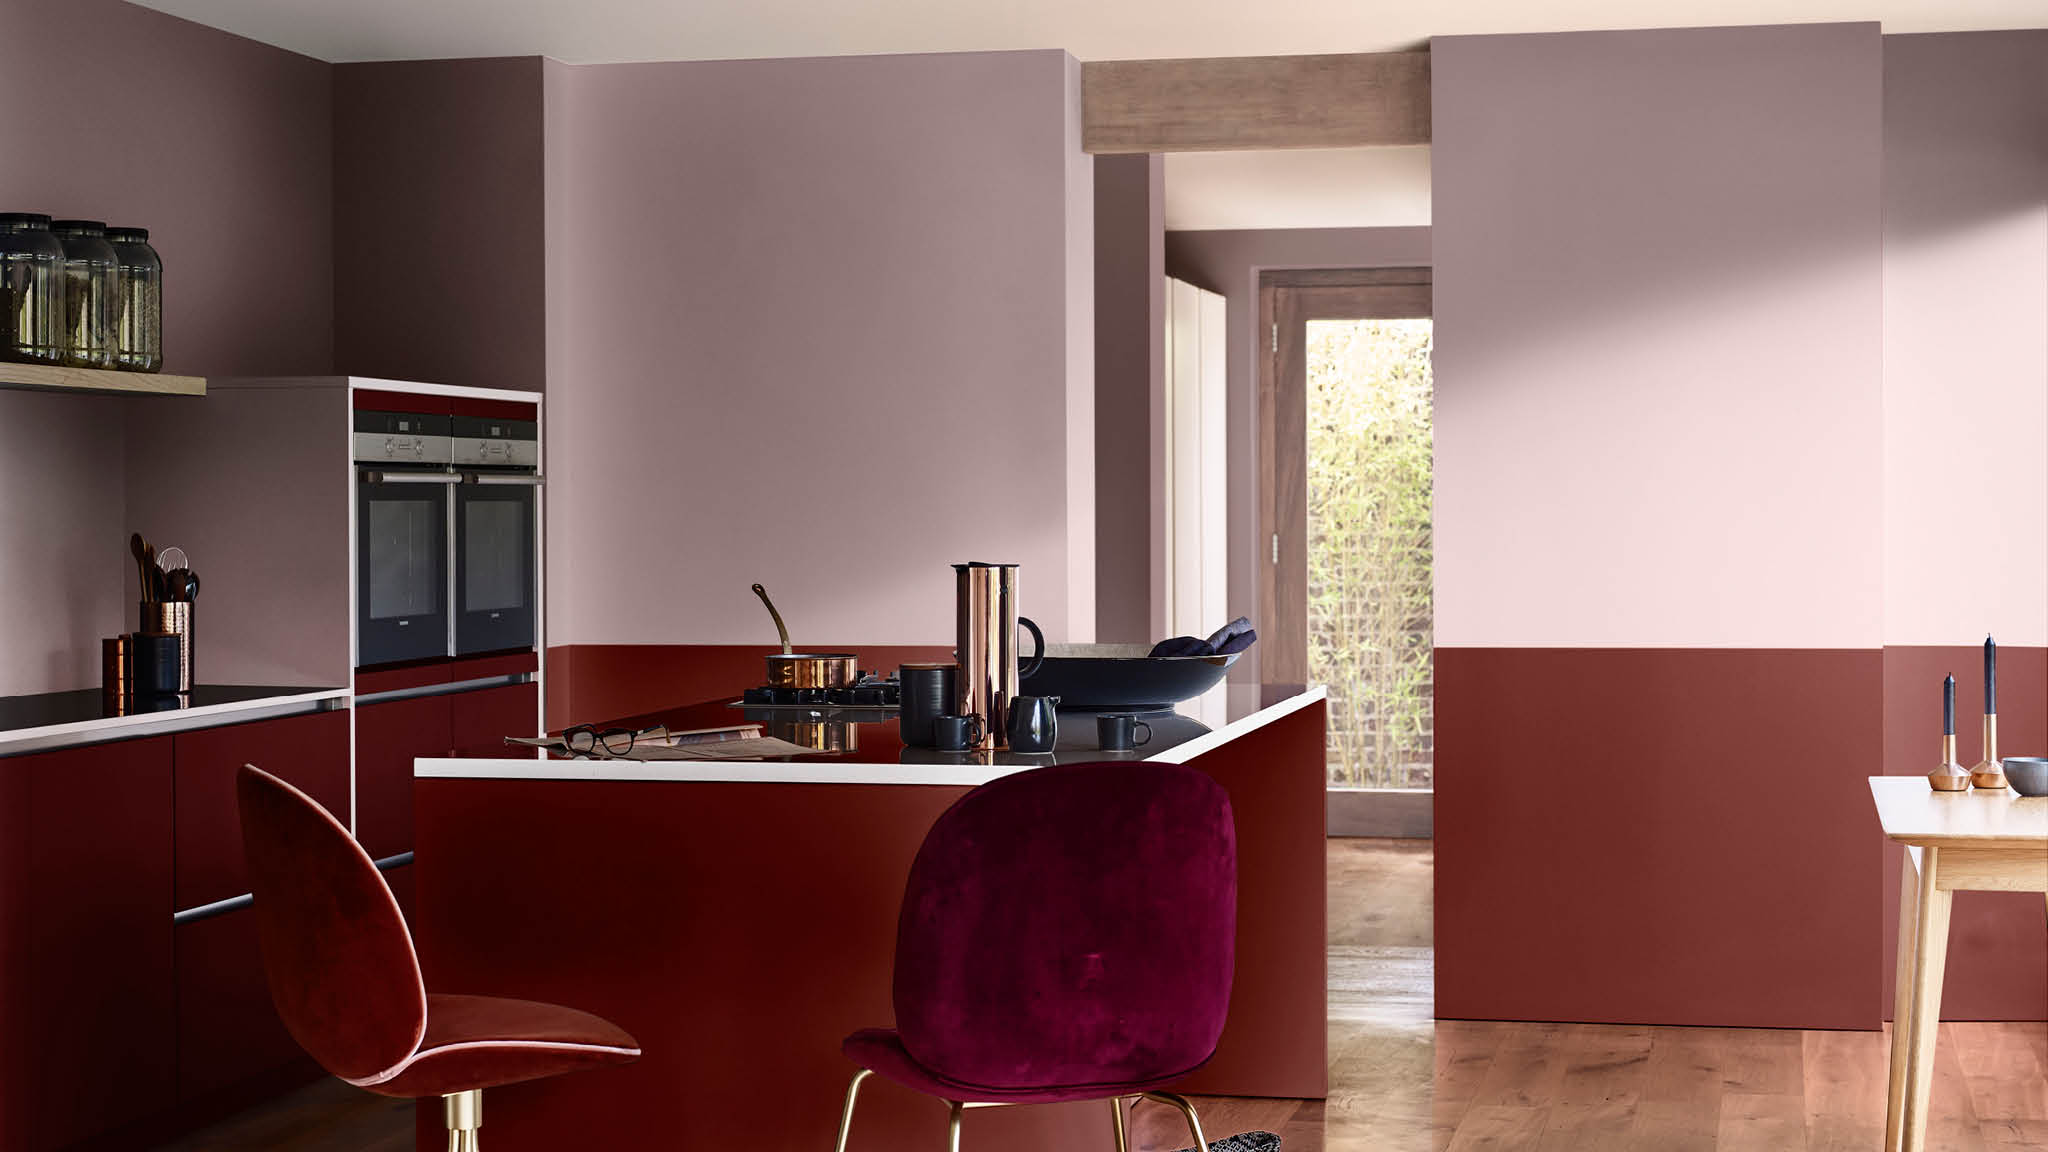 Pair Heart Wood with warm tones in your kitchen